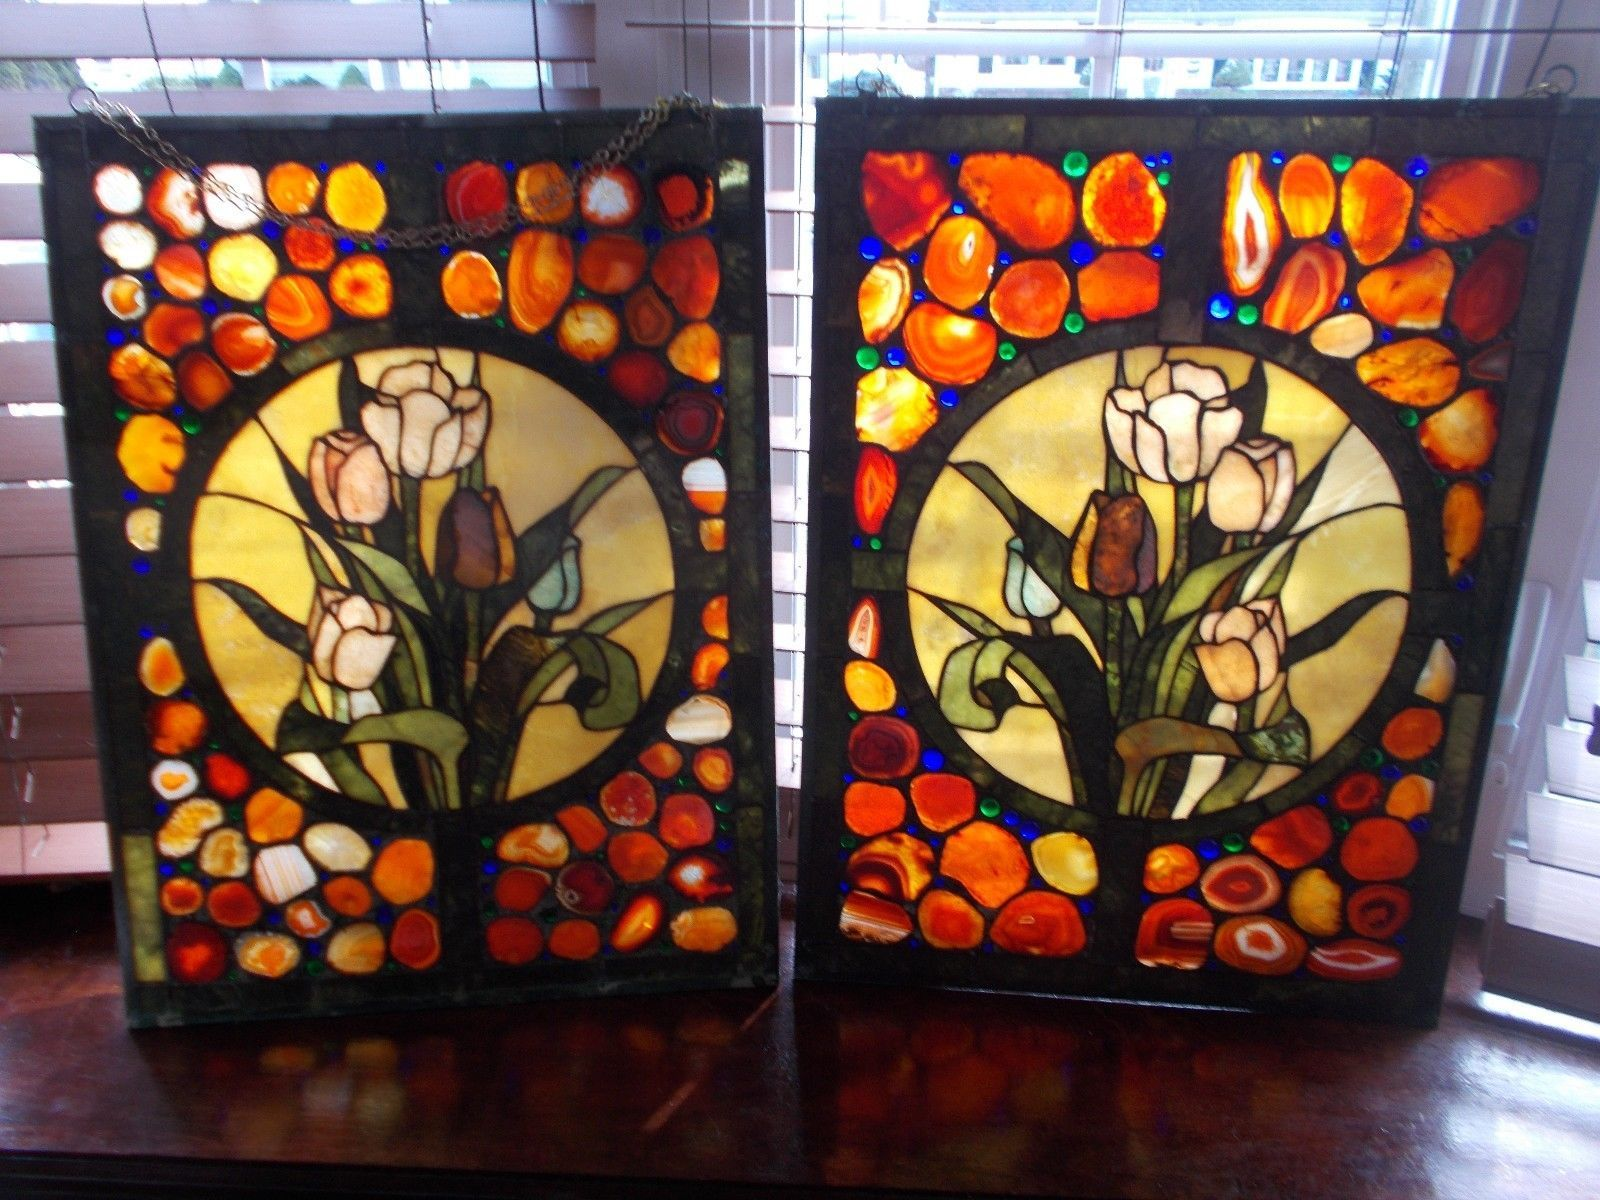 Pair Large Stained Glass Window Hangings Very Colorful Vibrant Stained Glass Flowers Stained Glass Window Hanging Window Hanging